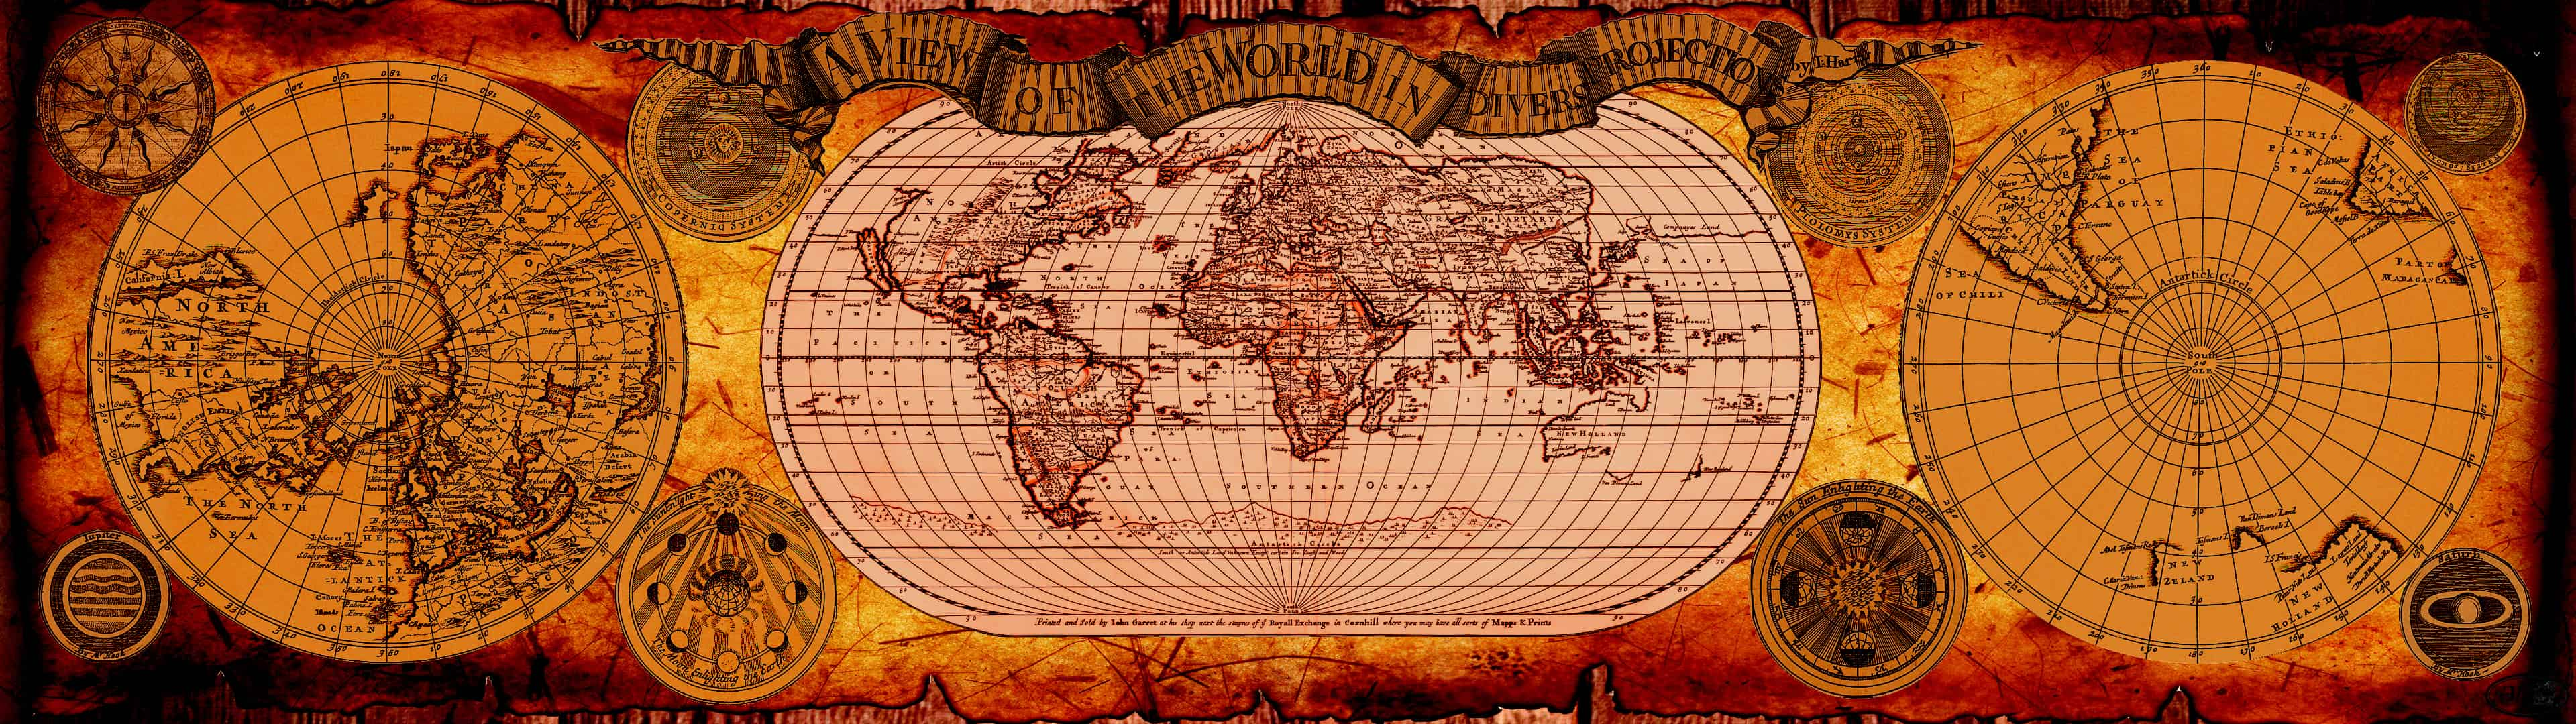 Vintage World Map Dual Monitor Wallpaper Pixelz